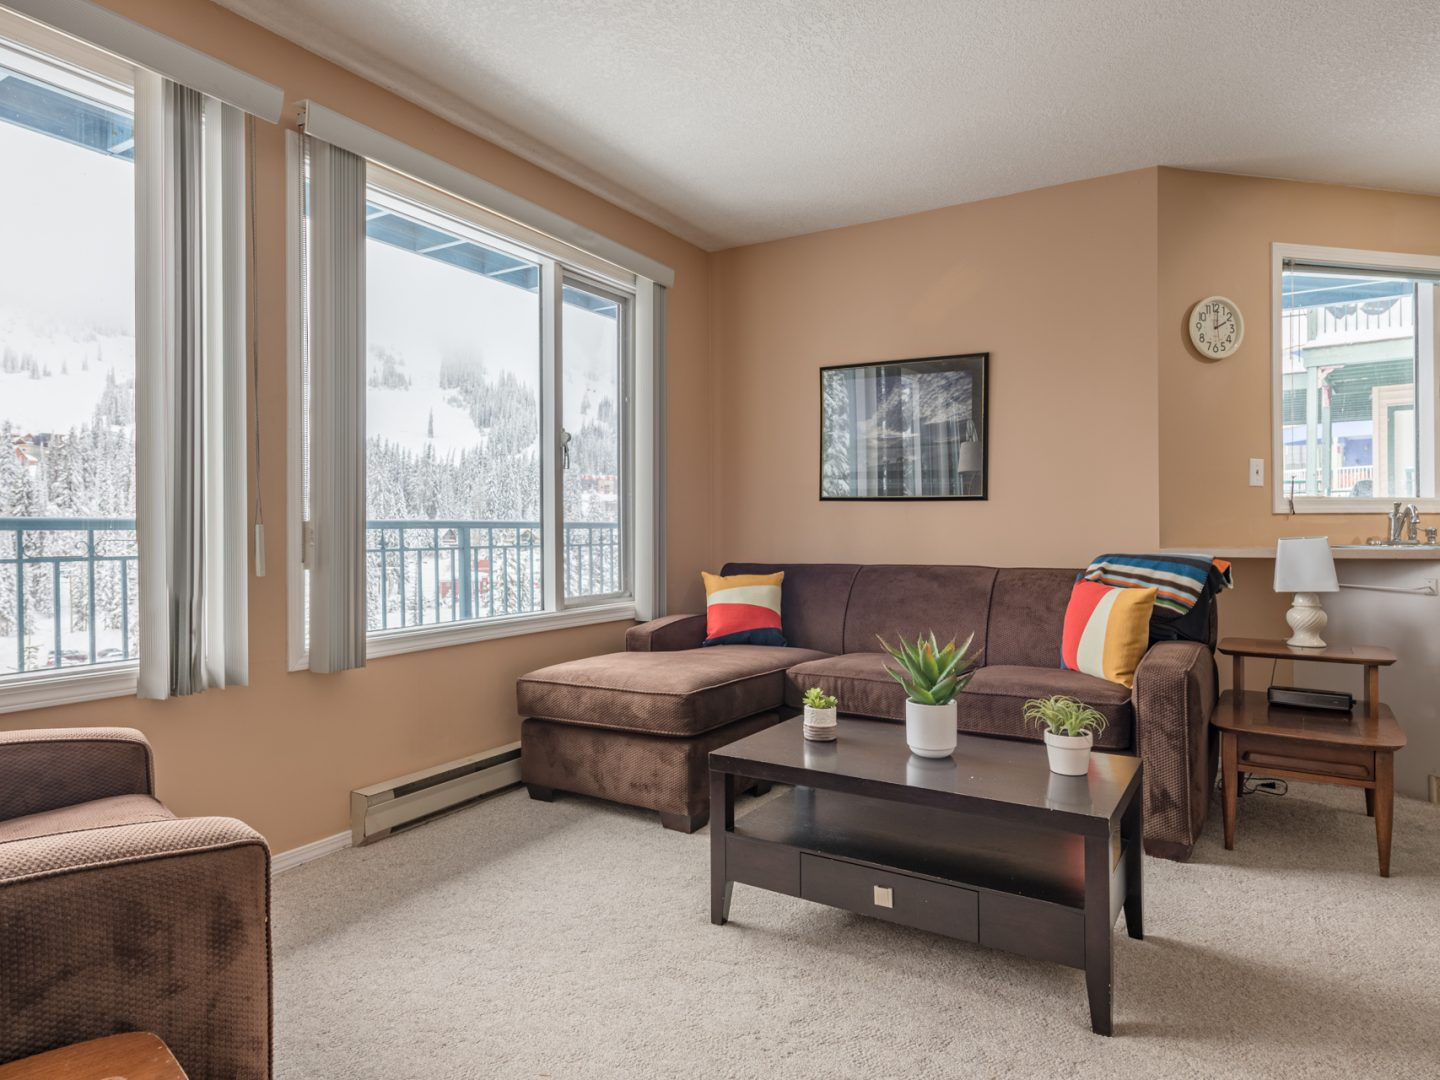 Silver Star Stays - The View Suite